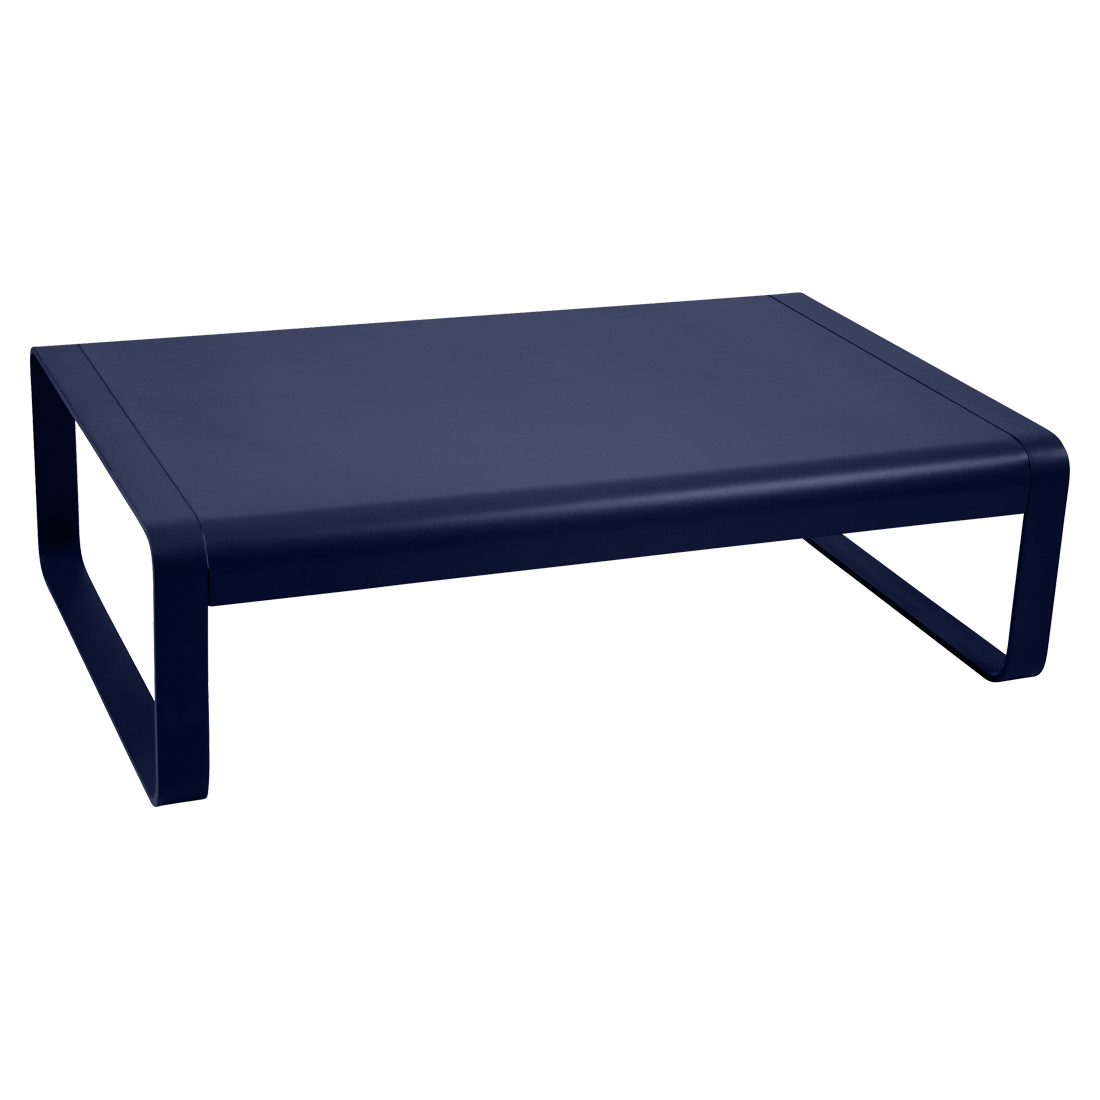 table basse metal, table basse de jardin, salon de jardin, table basse fermob